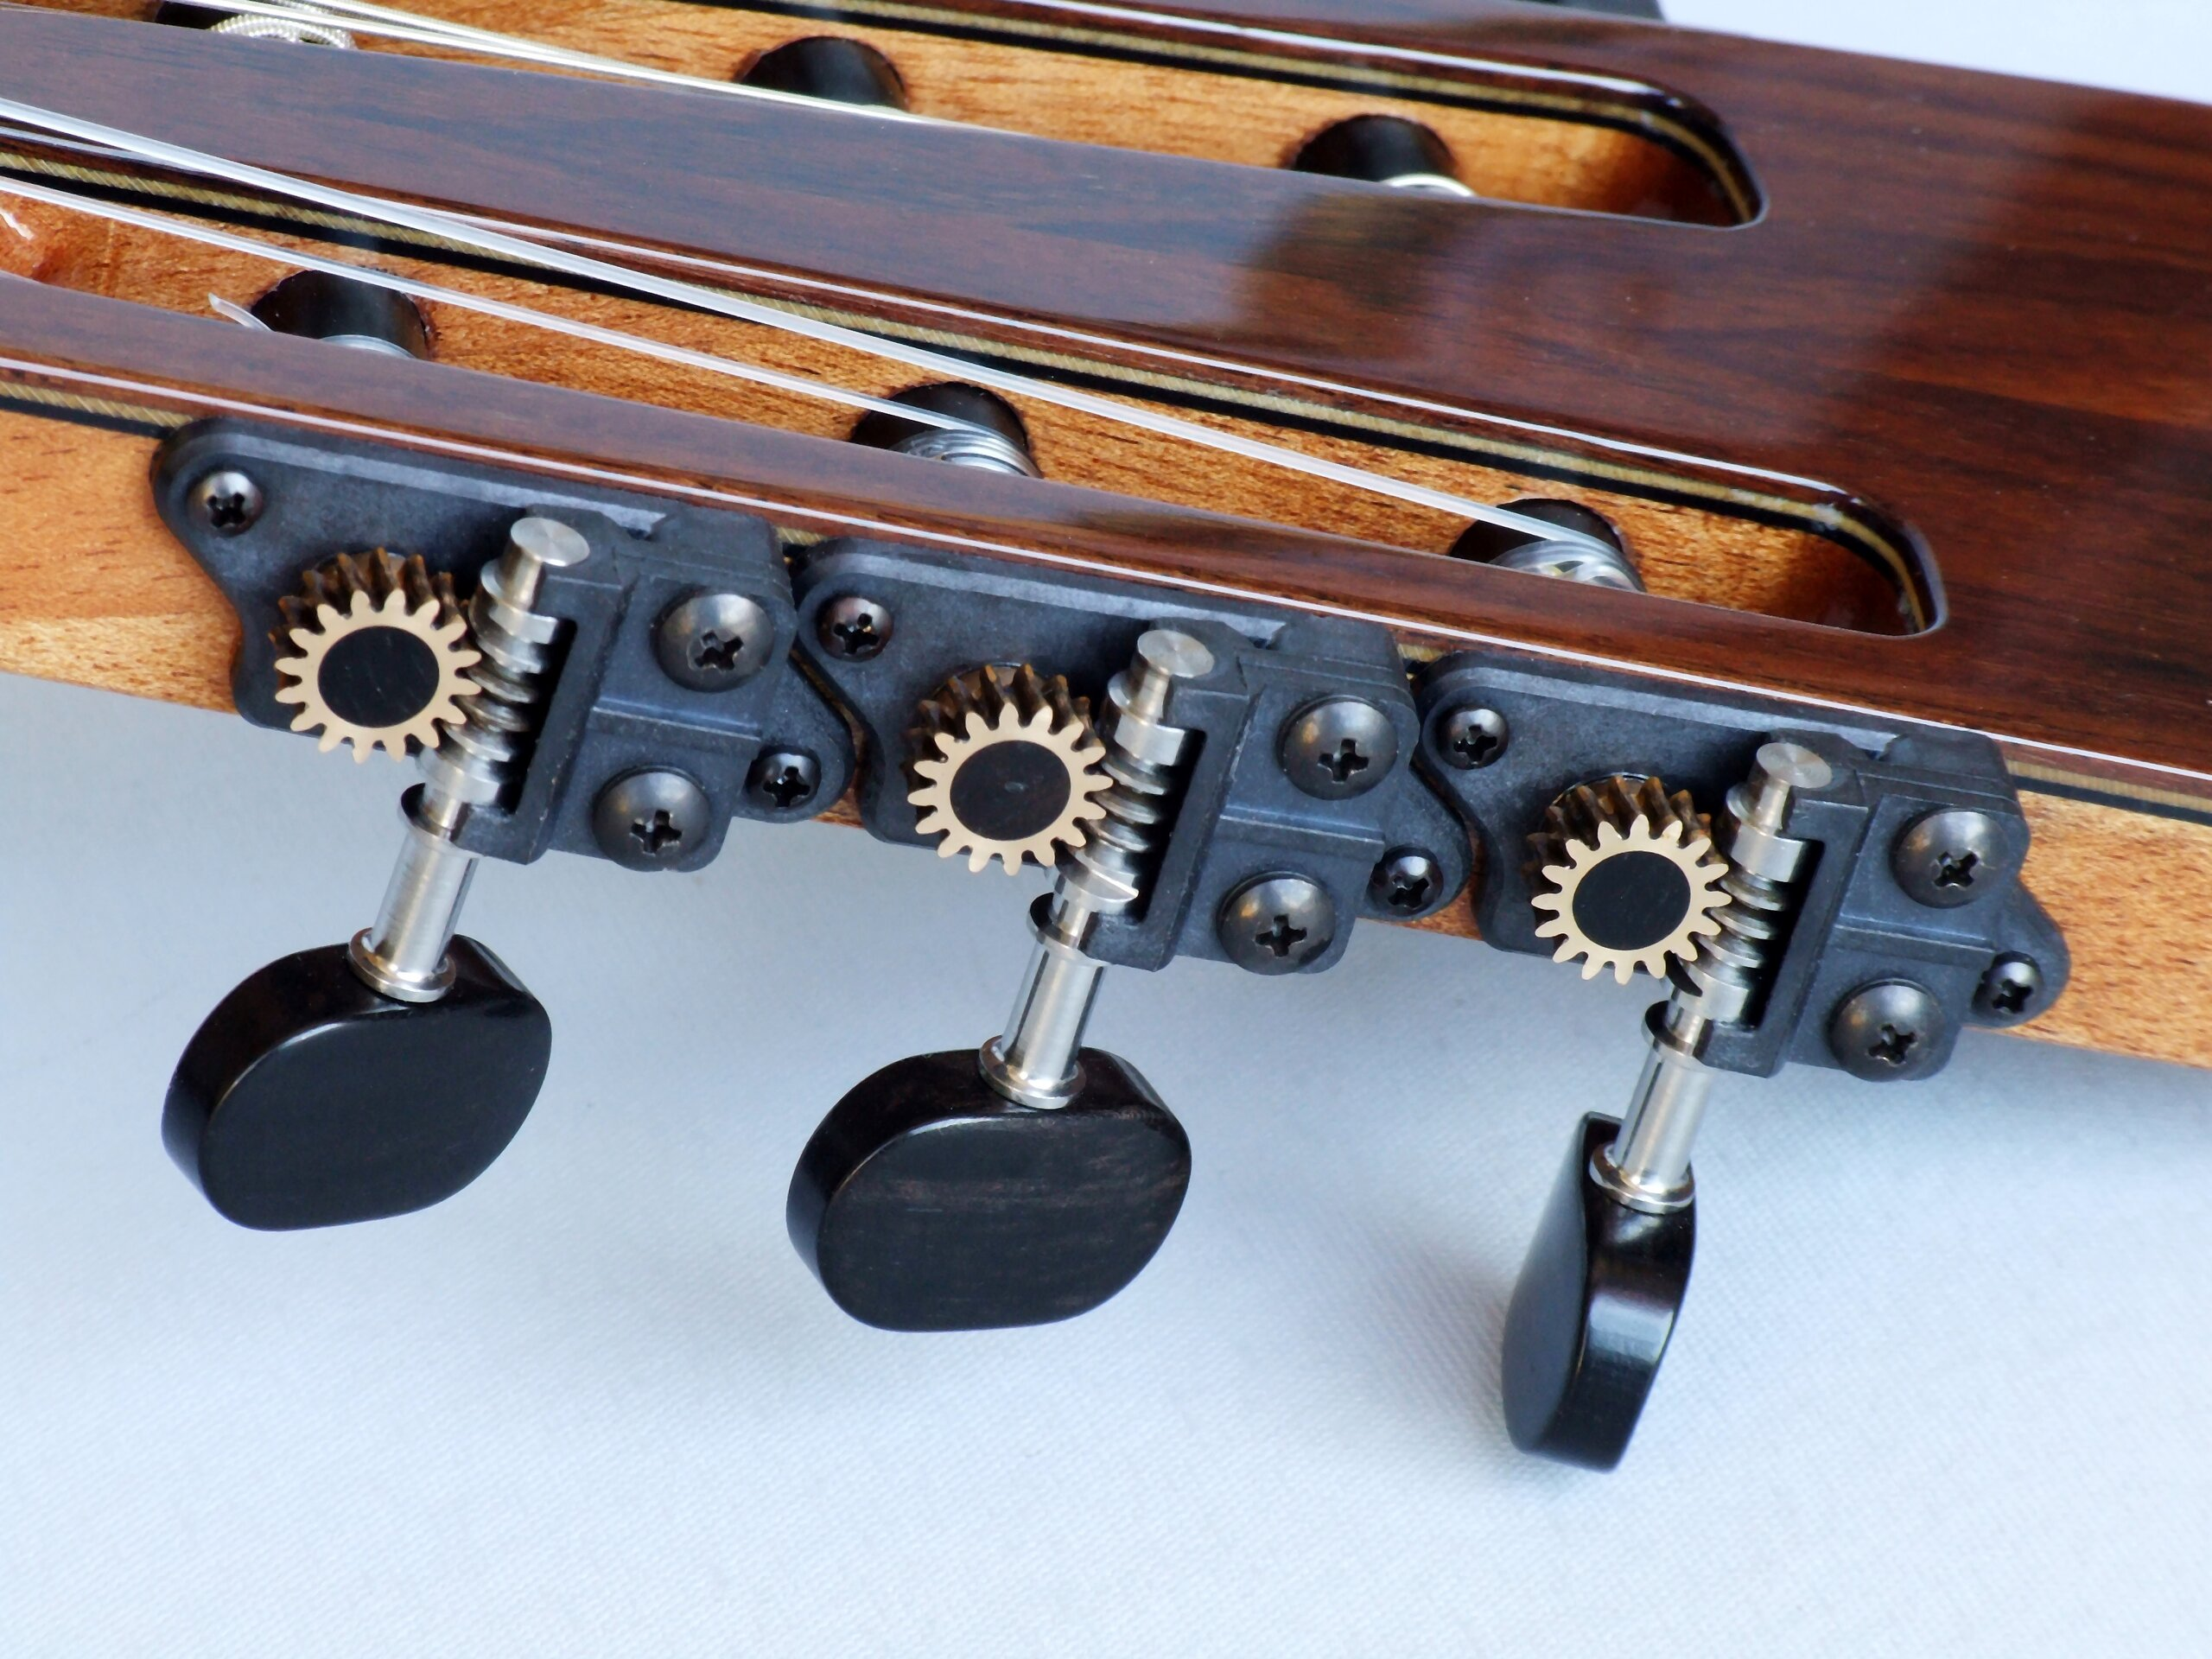 Gilbert tuners on a Gore classical guitar headstock